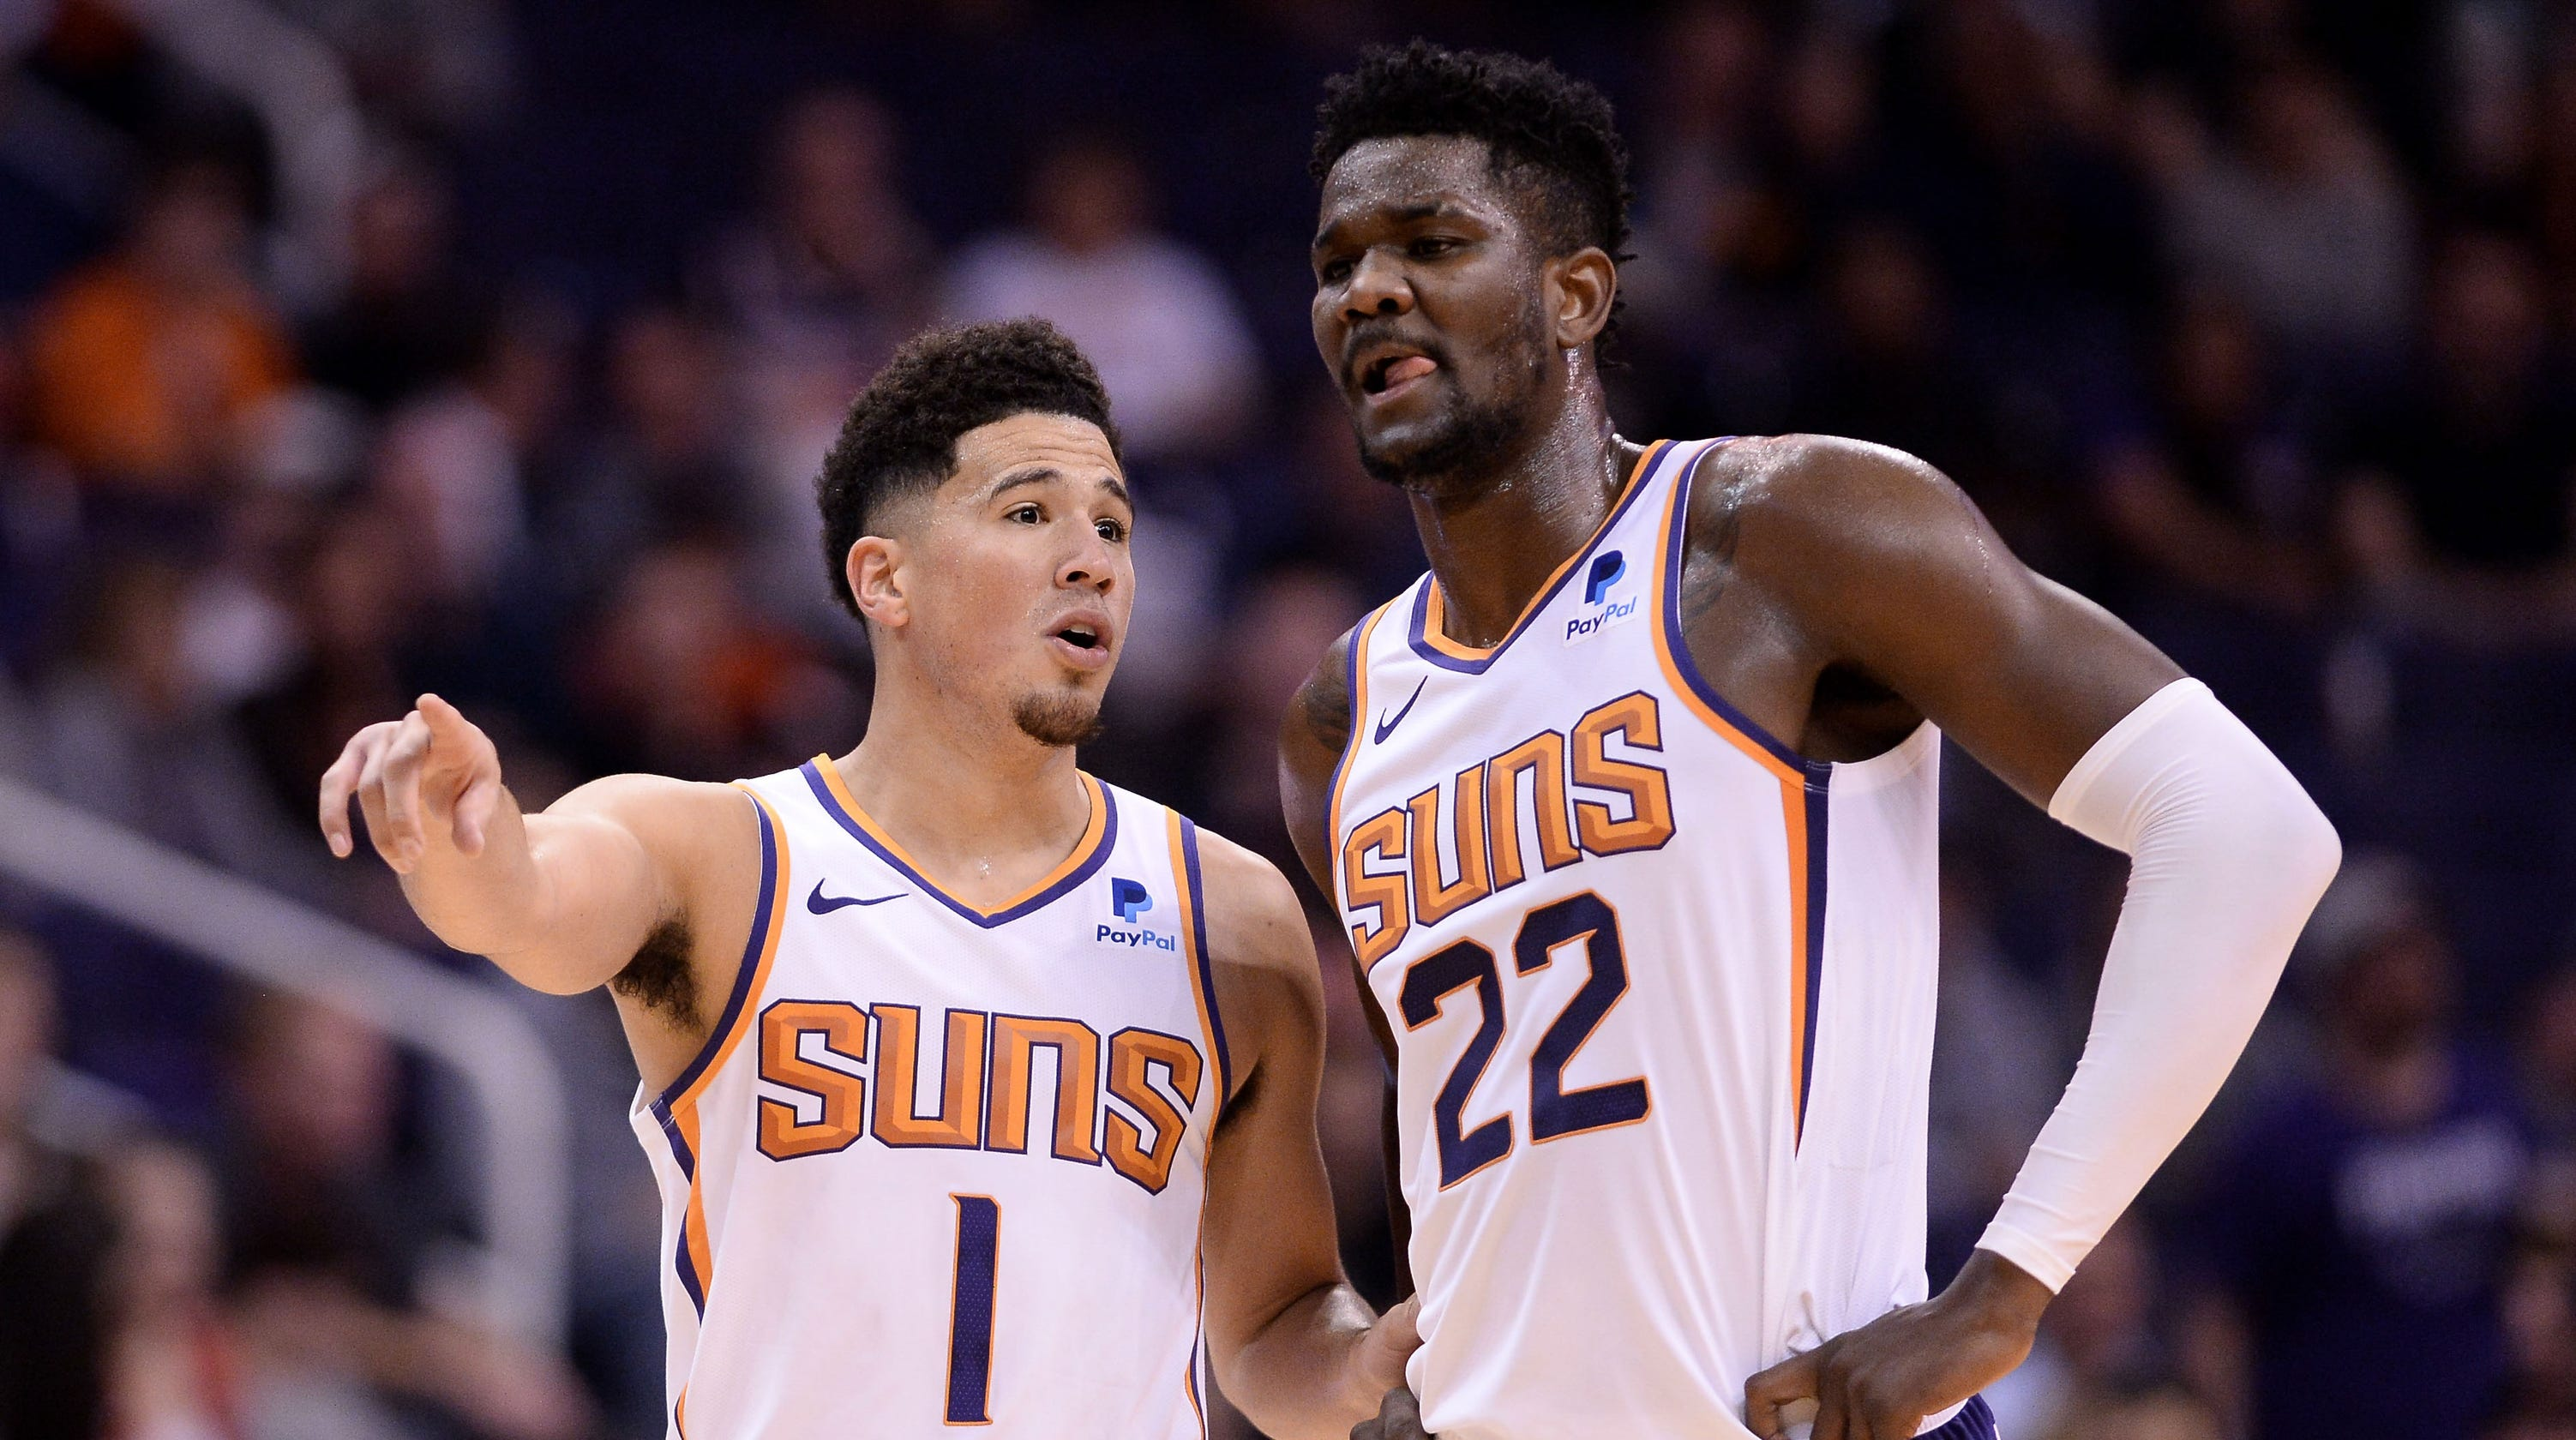 Booker and Ayton of the Phoenix Suns